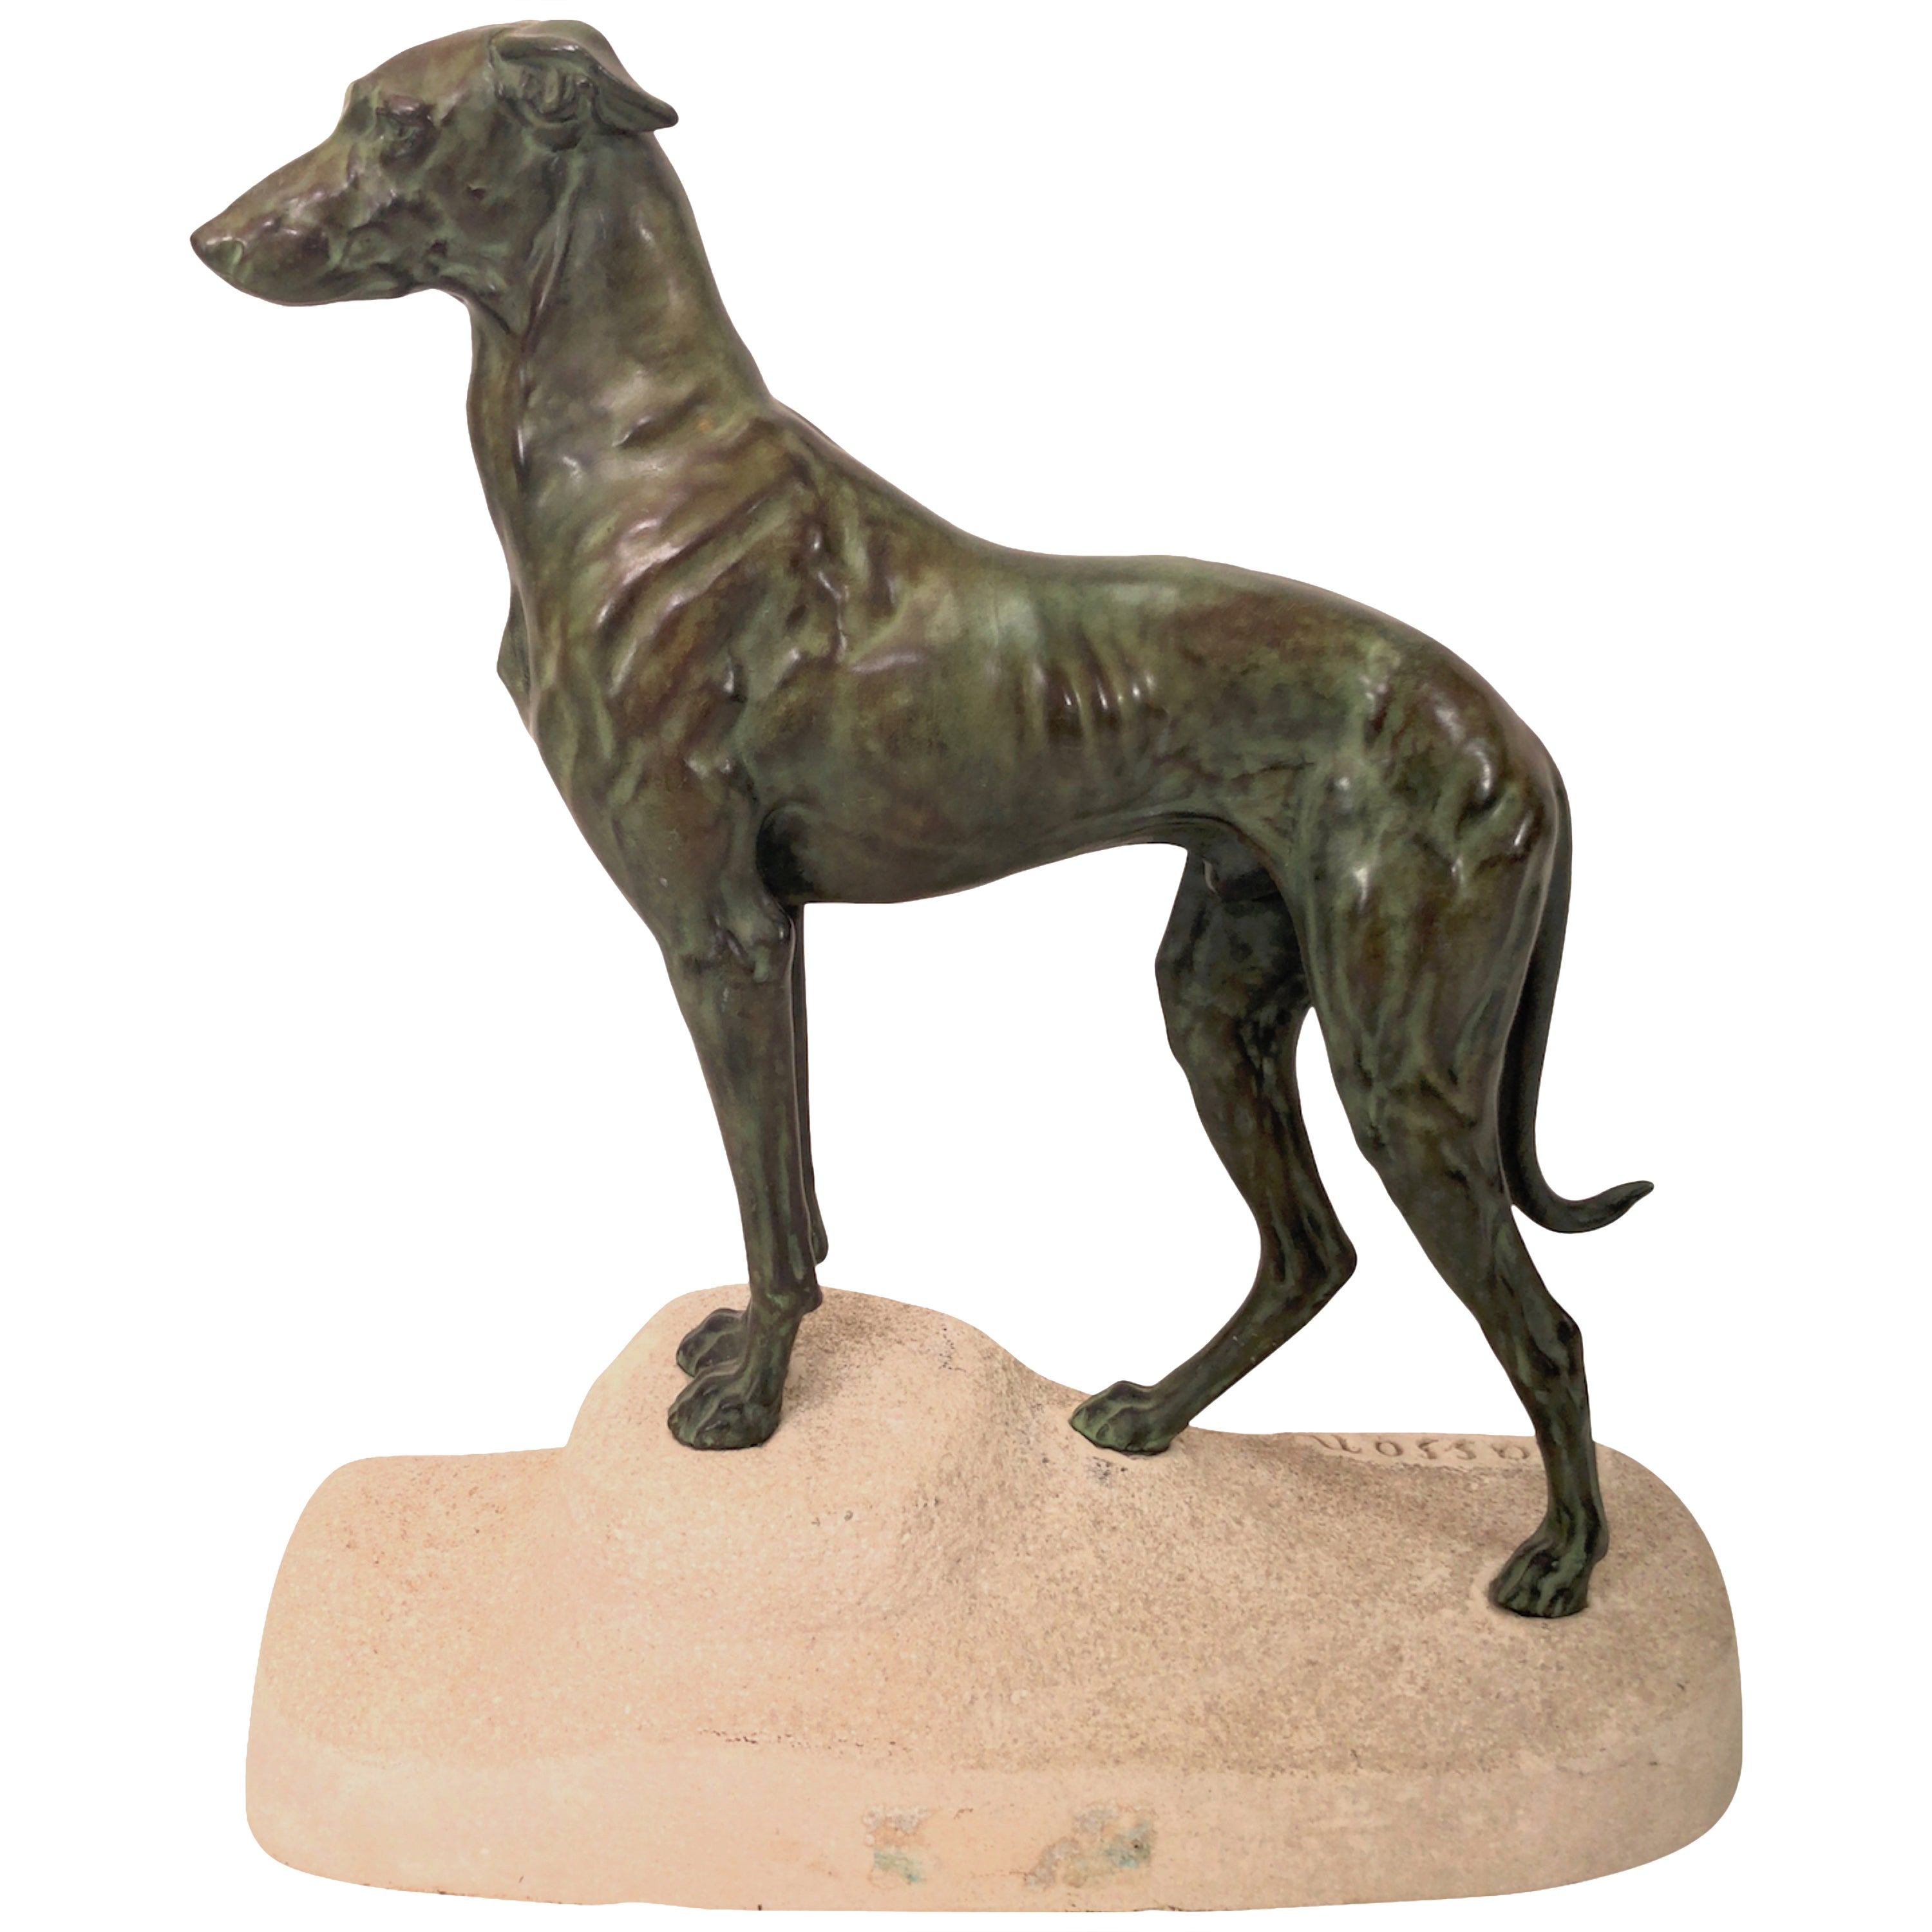 Impressive Max Le Verrier Art Deco Greyhound Sculpture Sloughi by Masson